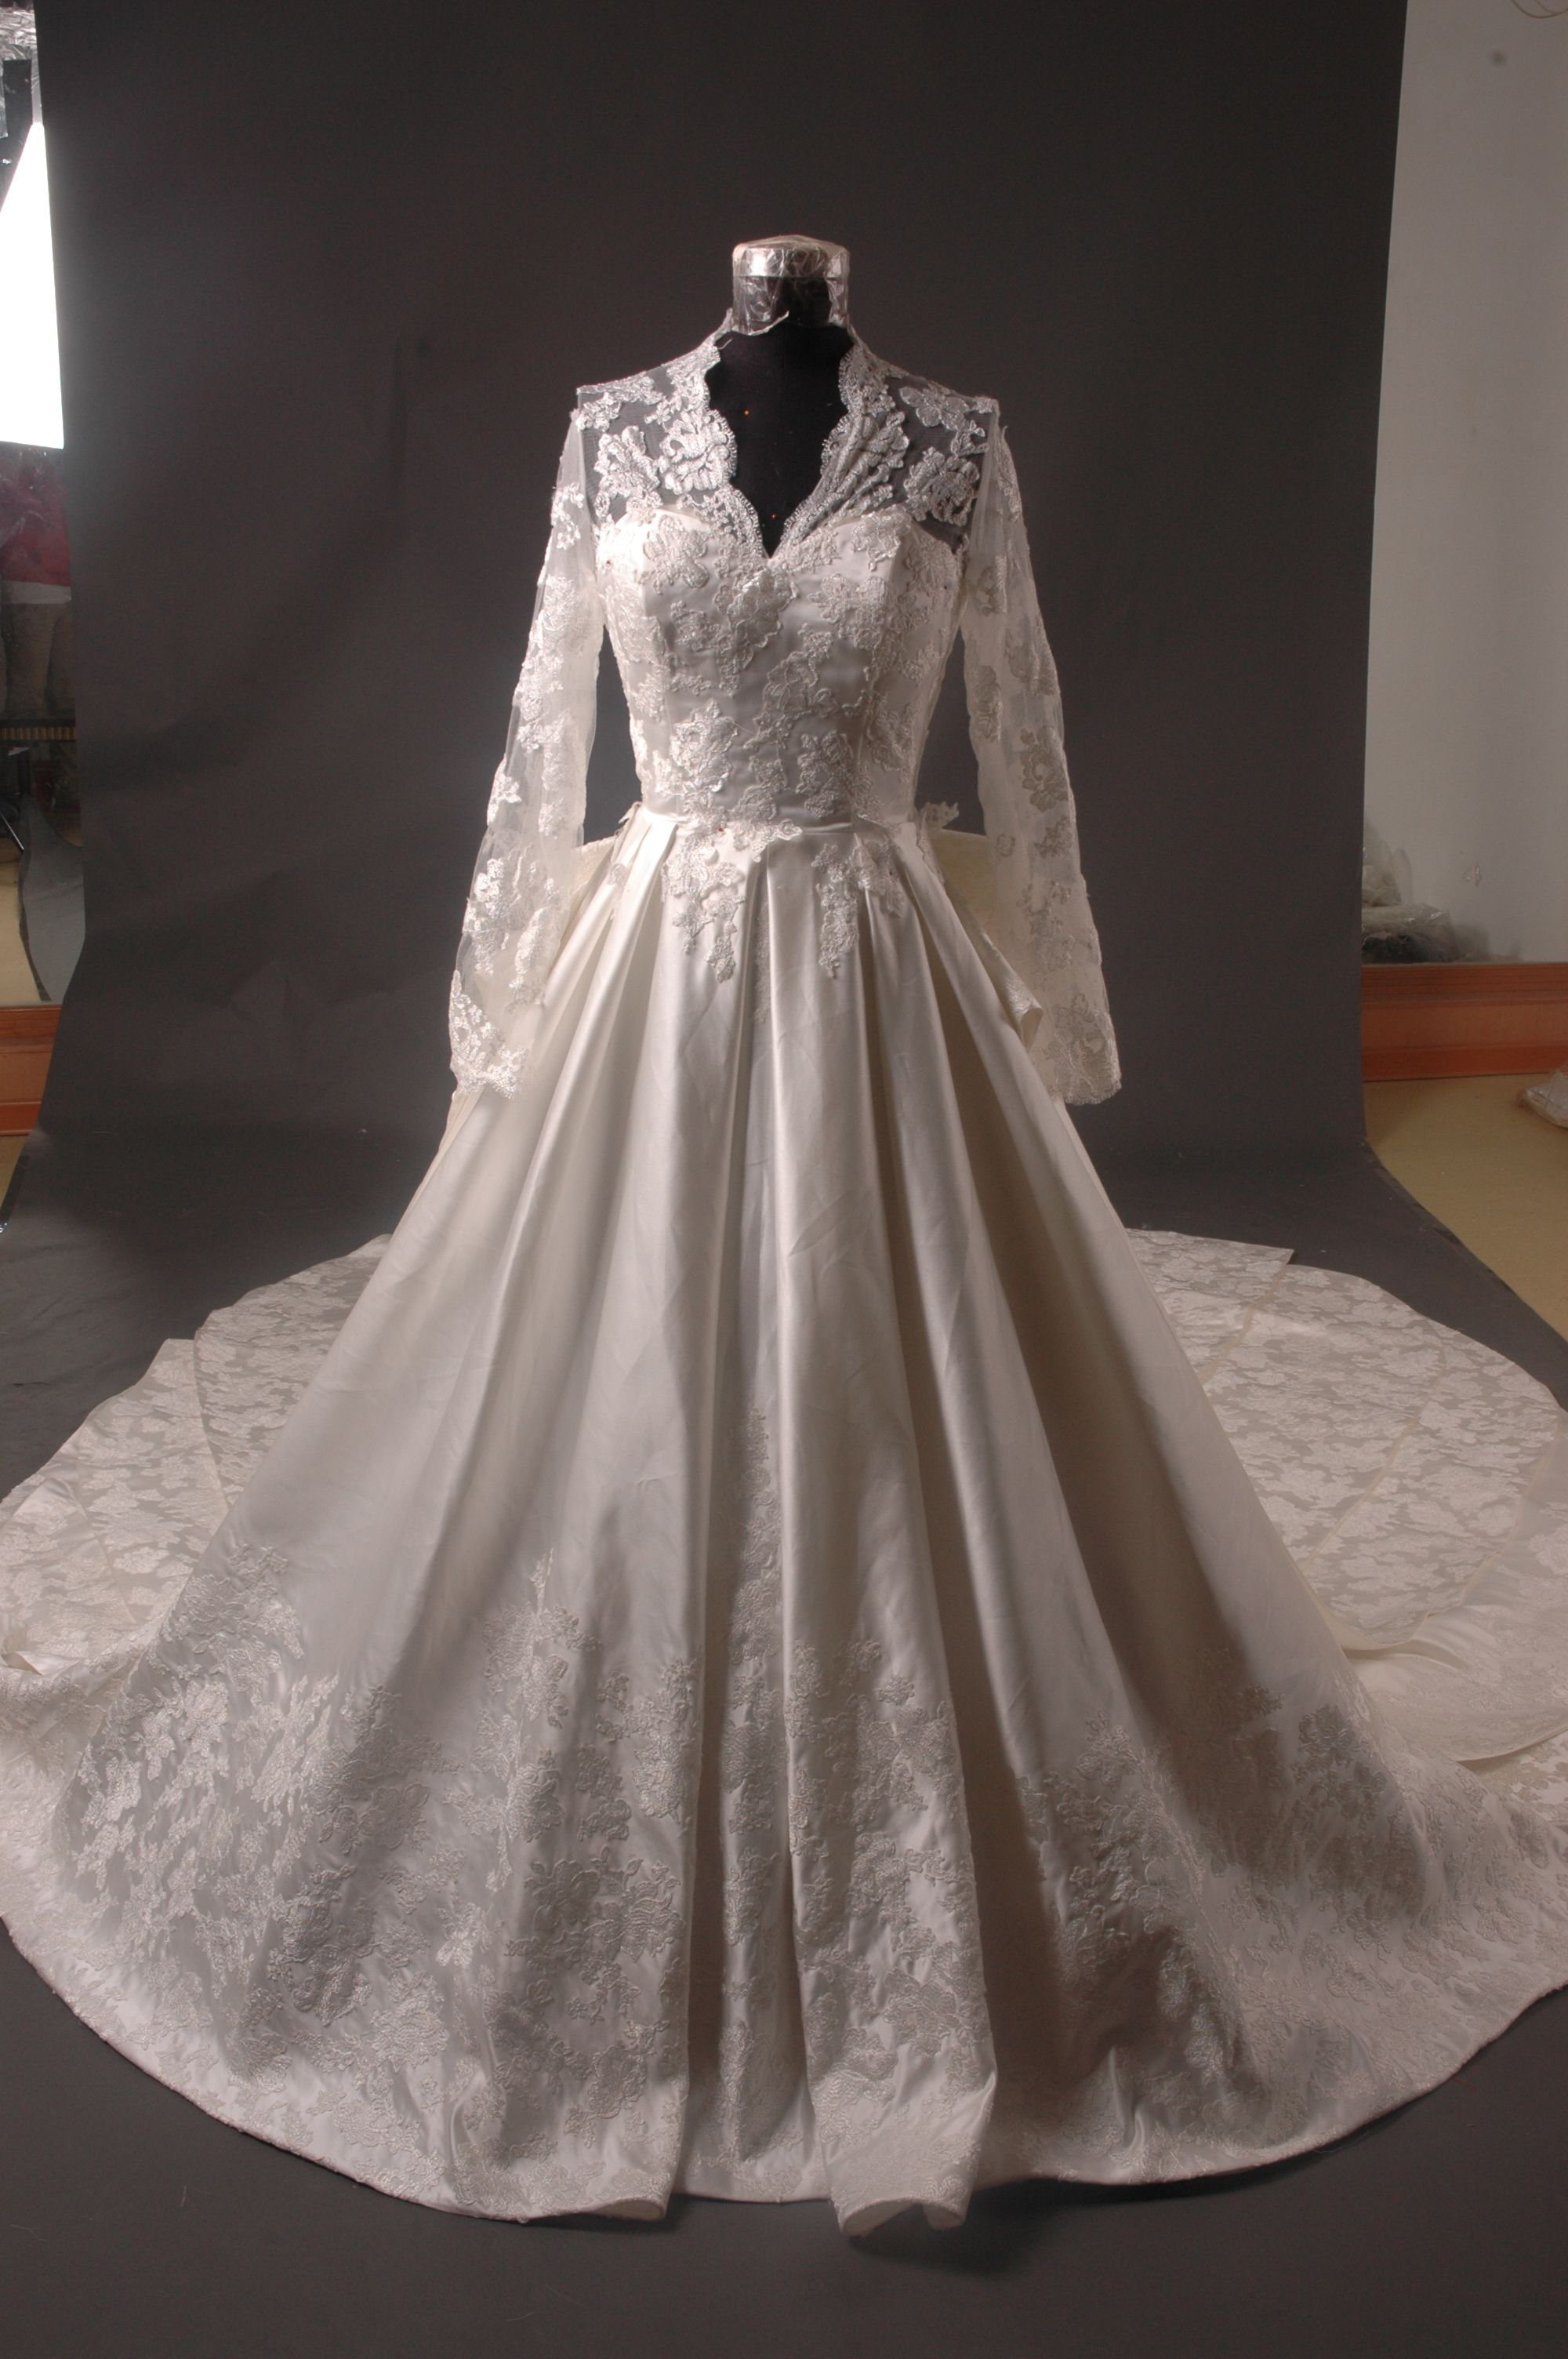 Wedding gown designers a new list for wedding gown